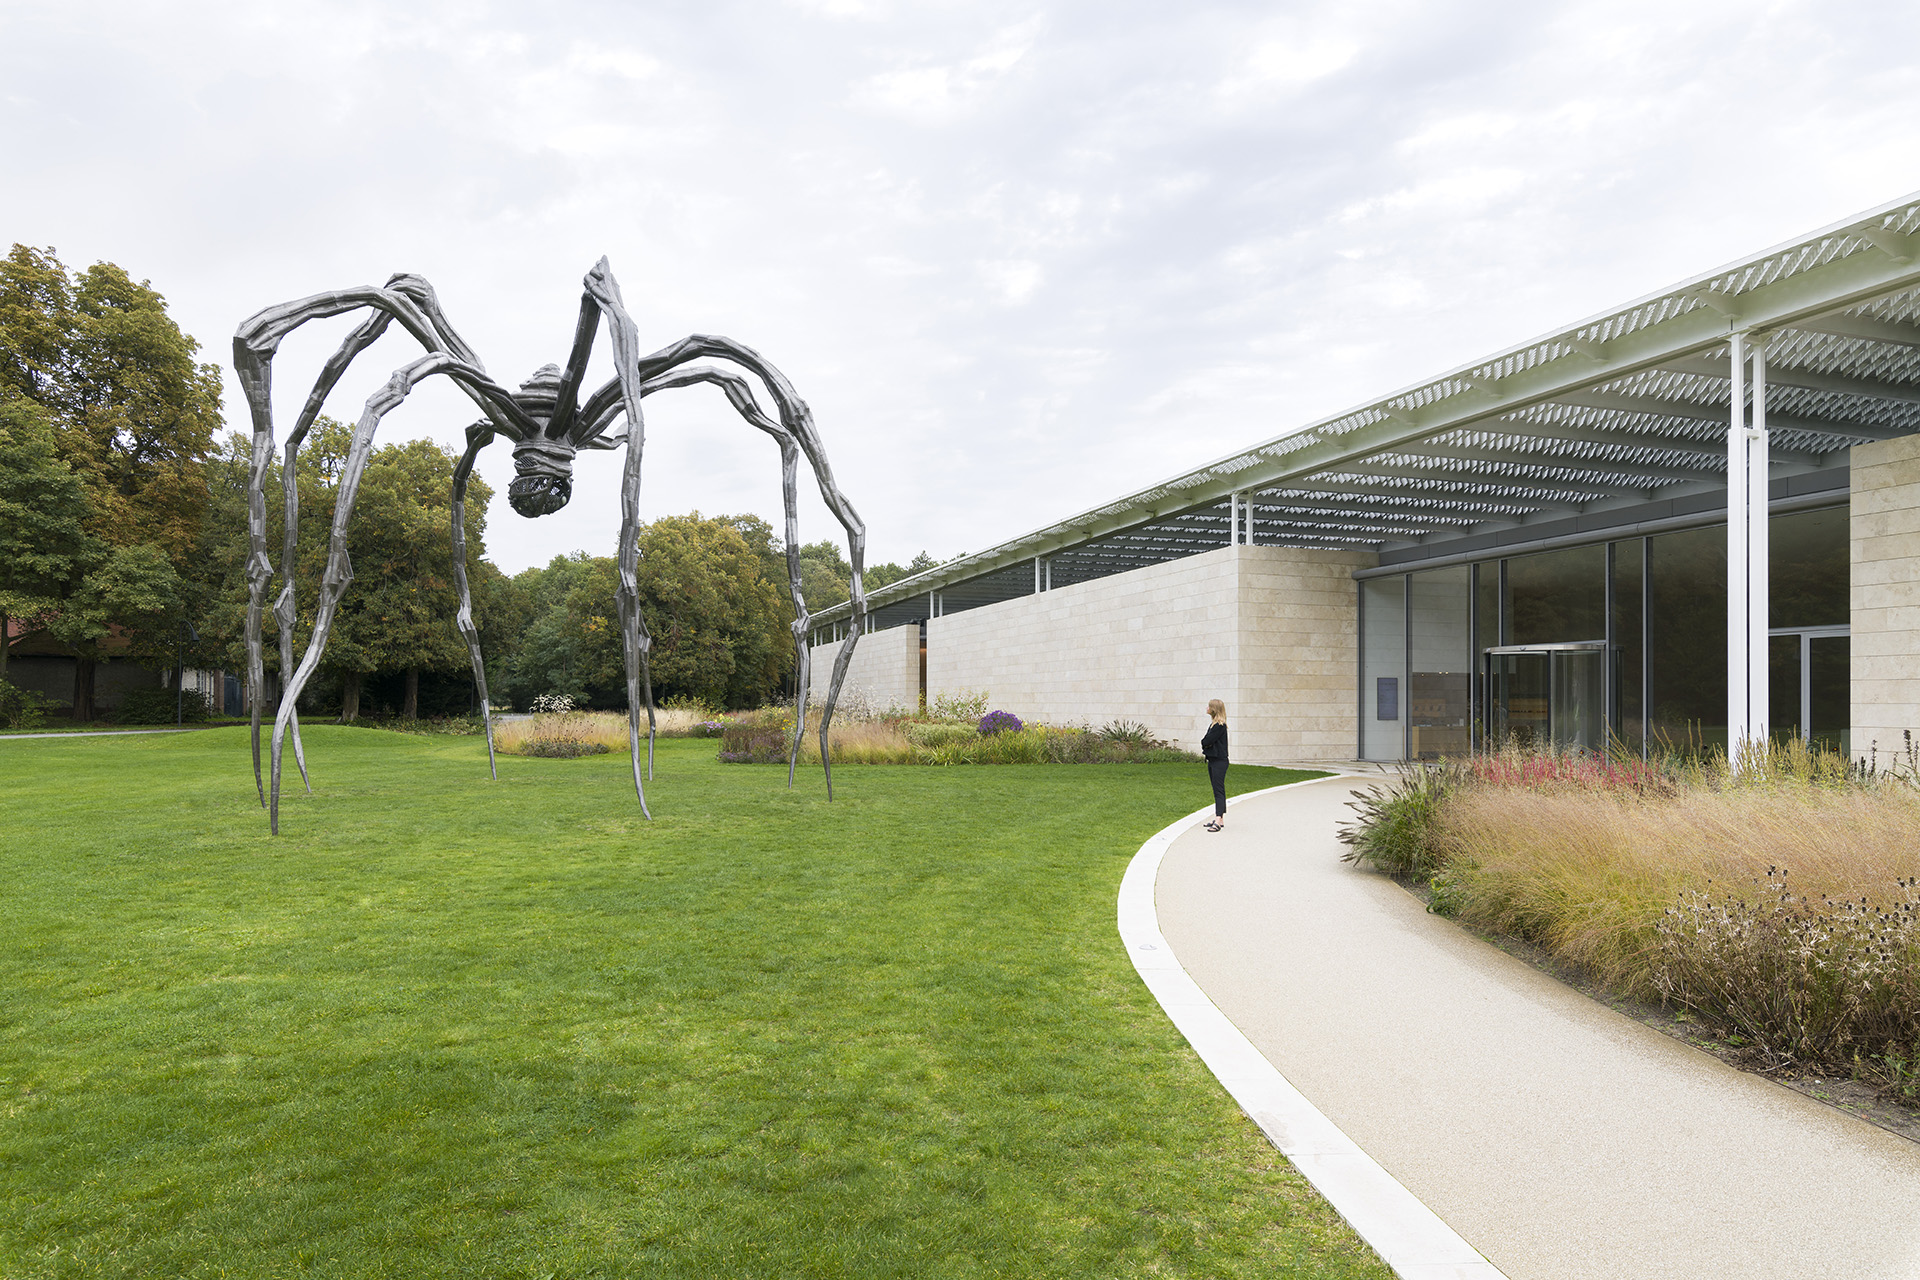 louise-bourgeois-to-unravel-a-torment-maman